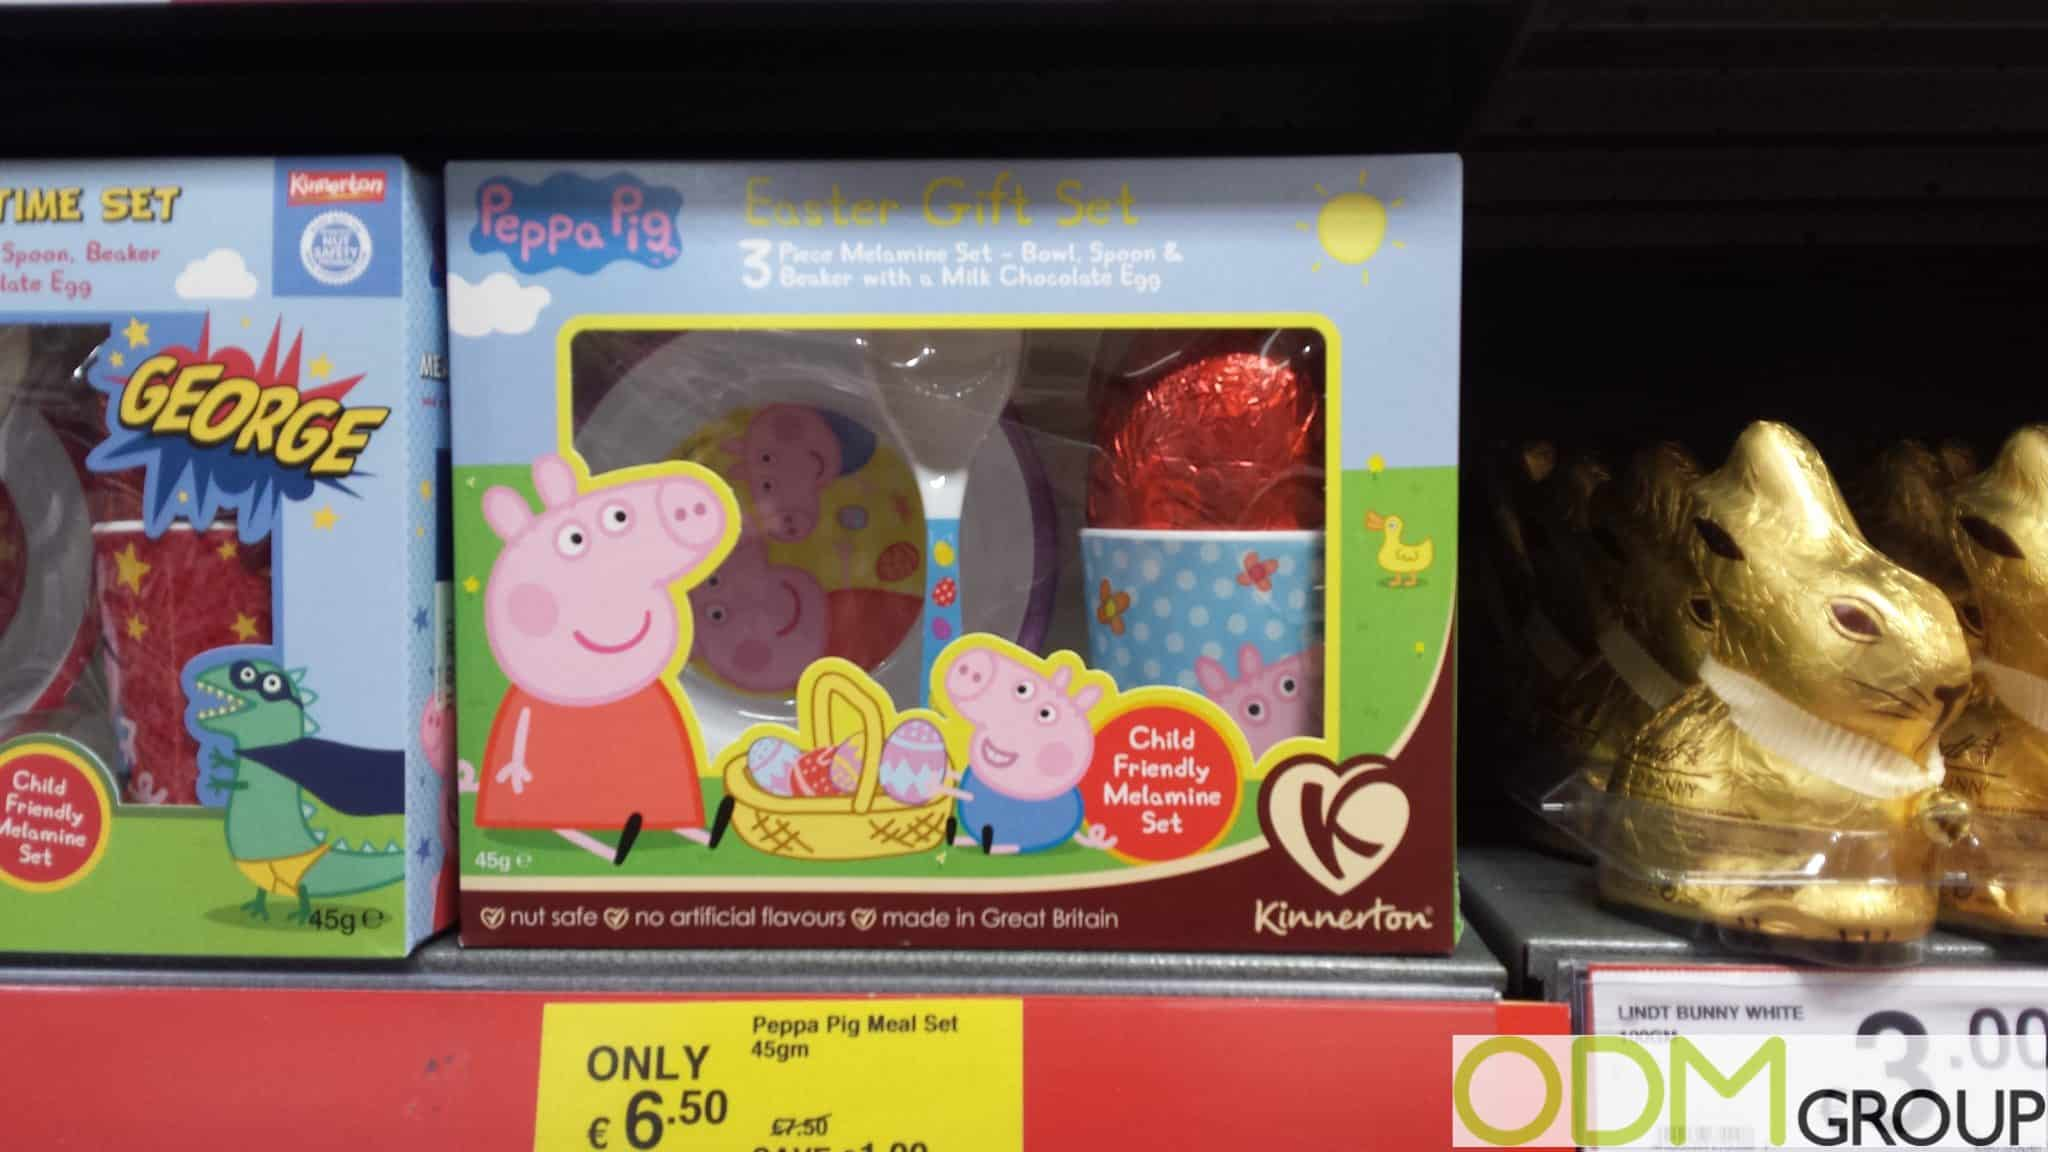 Peppa Pig's On Pack Promotion Easter Gift Set